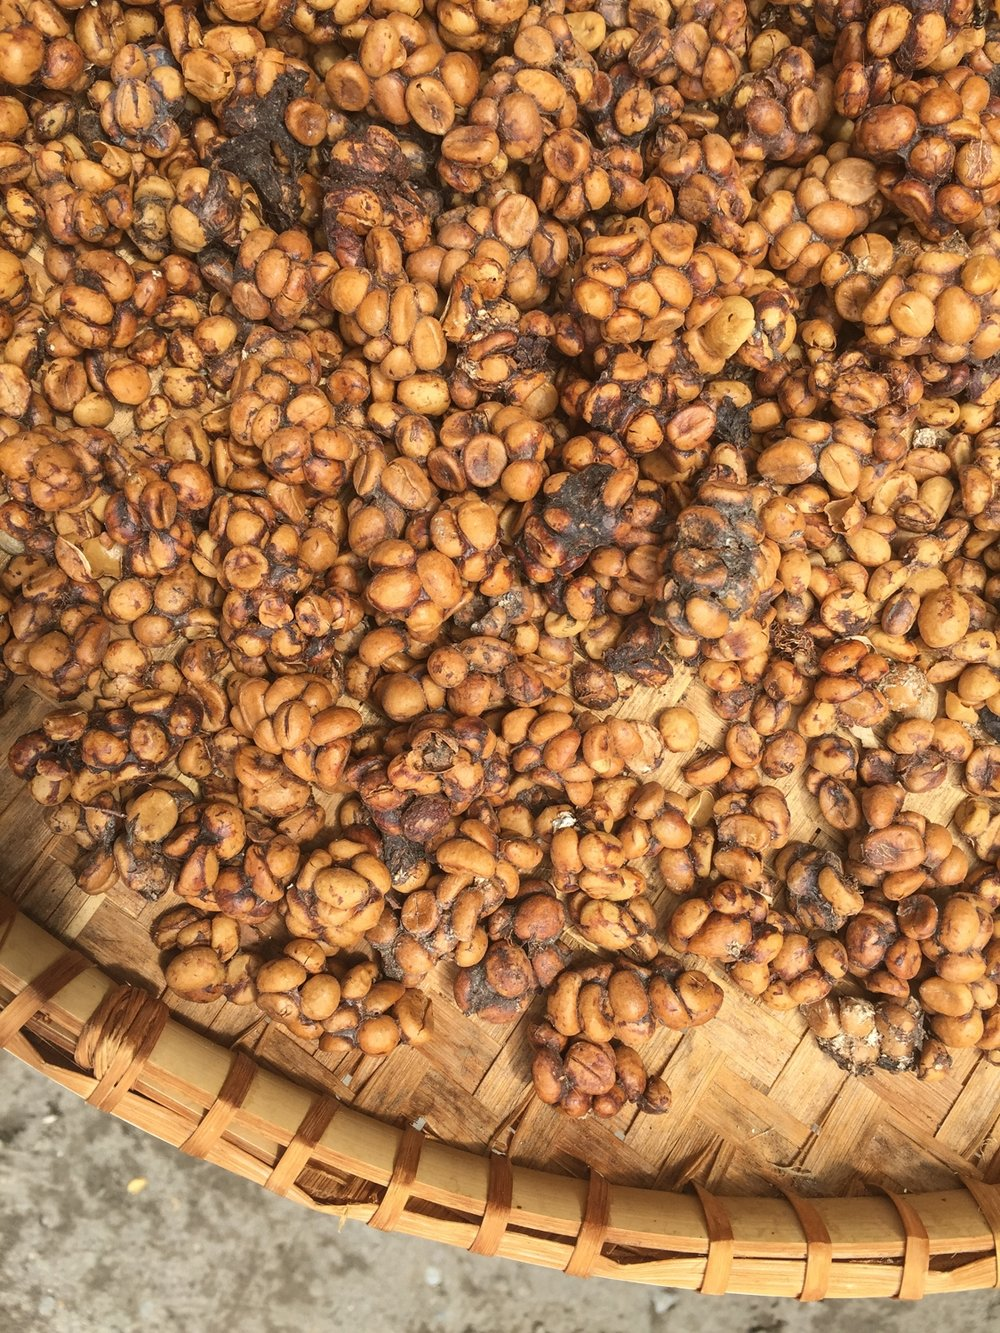 Place where you can get Luwak coffee made from beans shat by civets